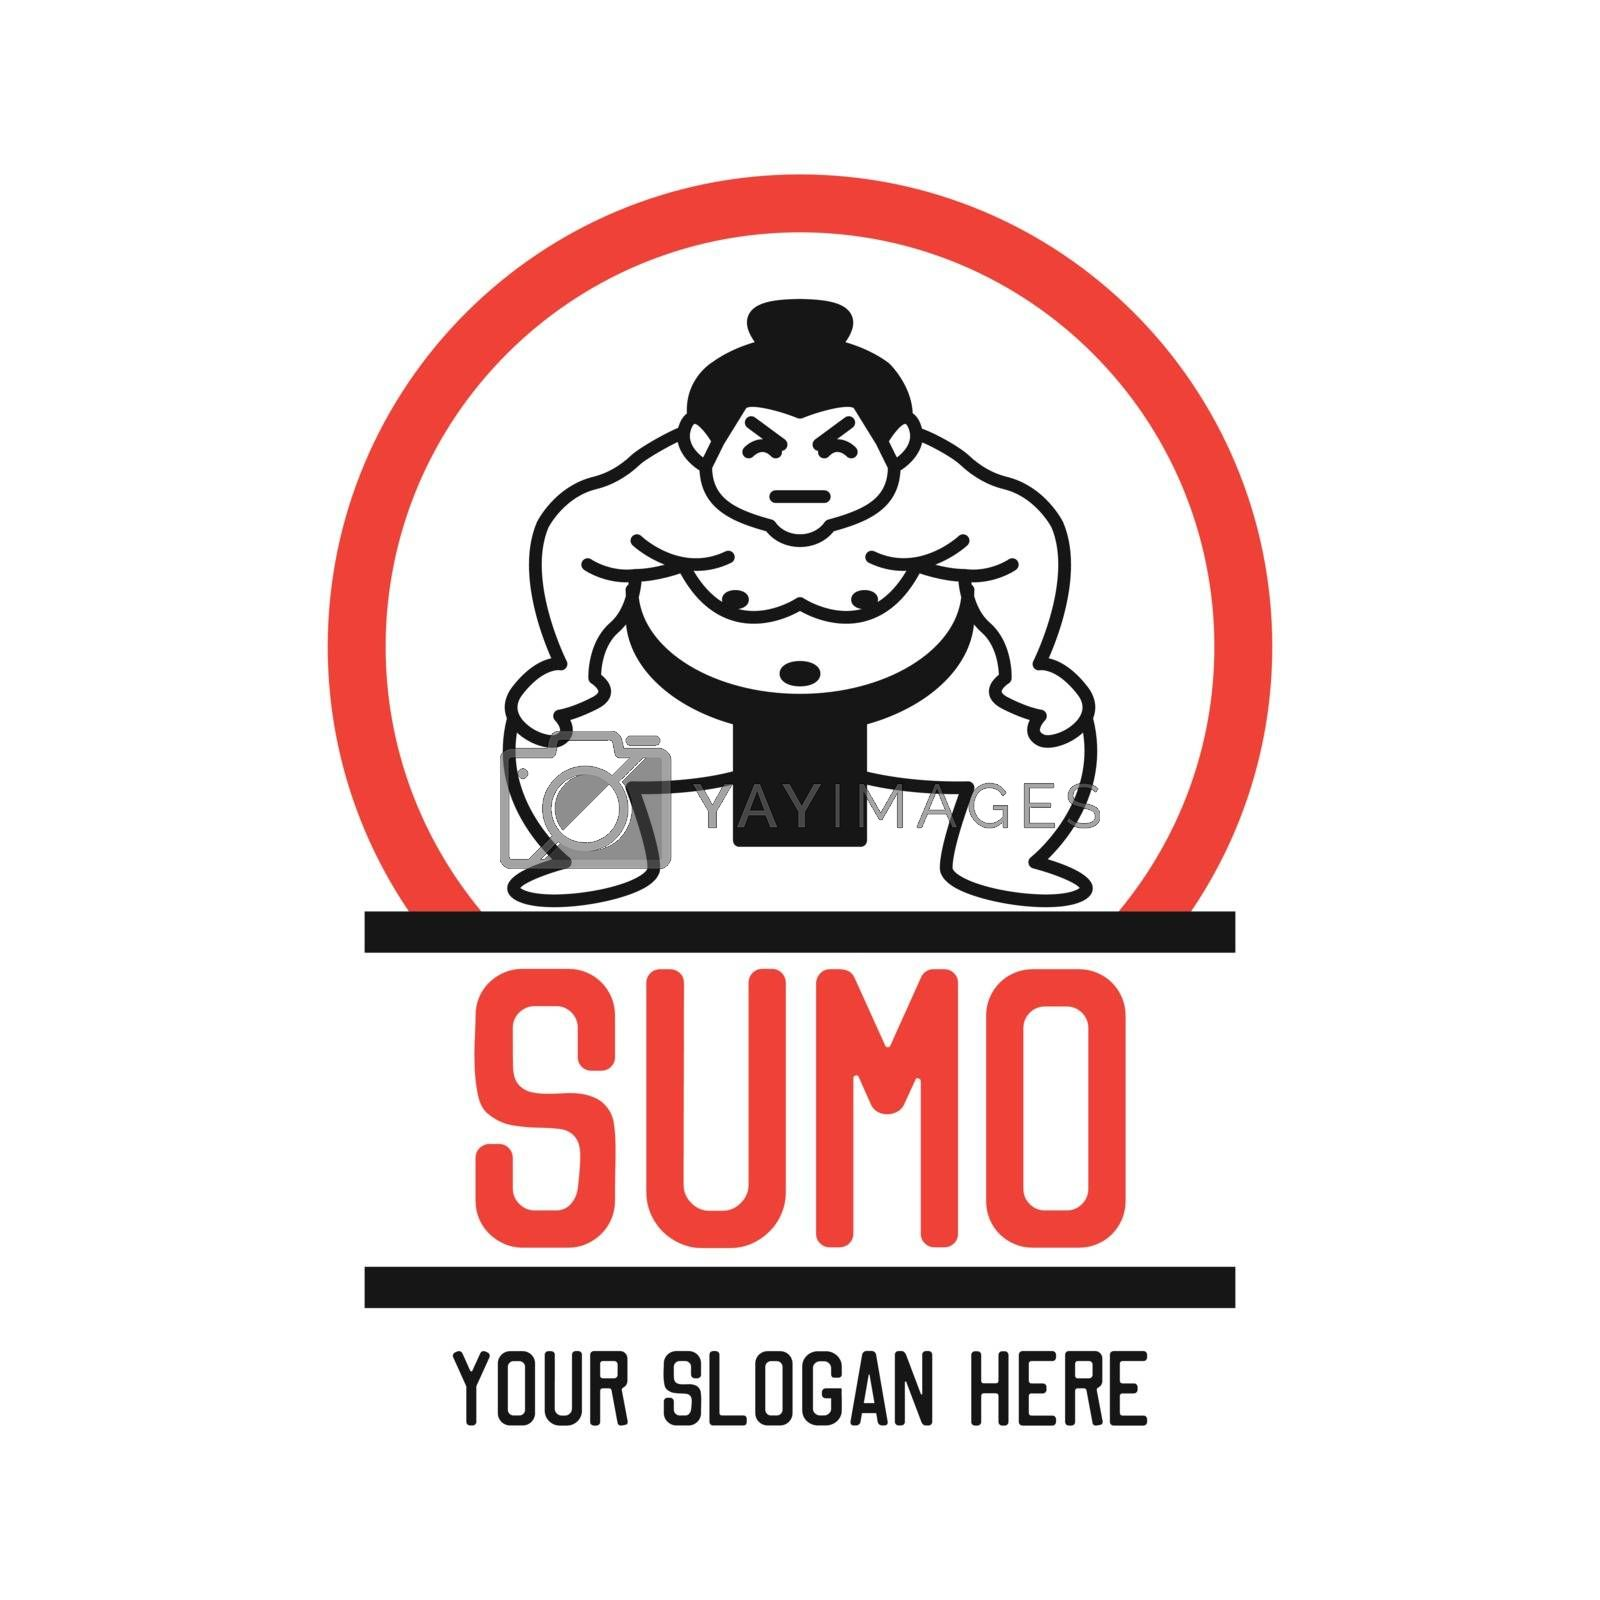 sumo icon with text space for your slogan / tag line, vector illustration